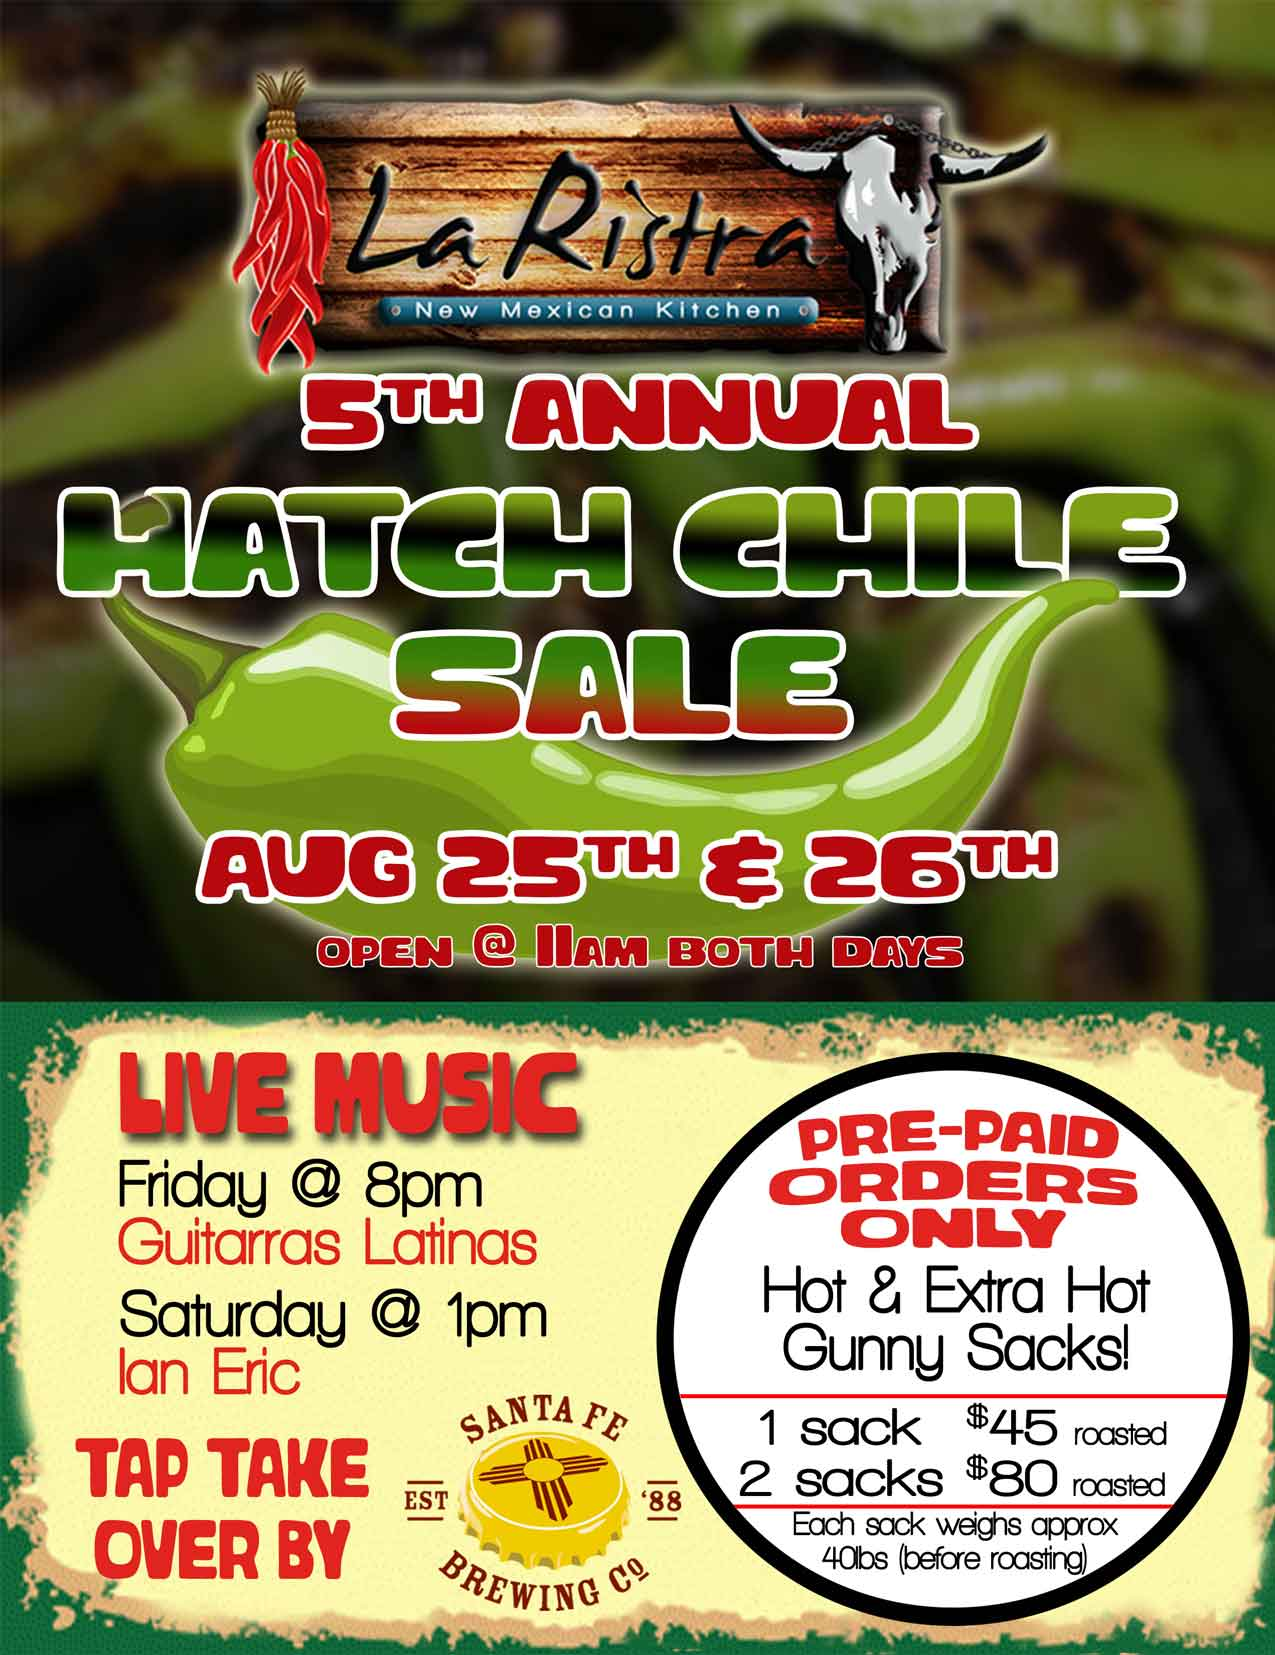 Hatch Chile Festival at La Ristra